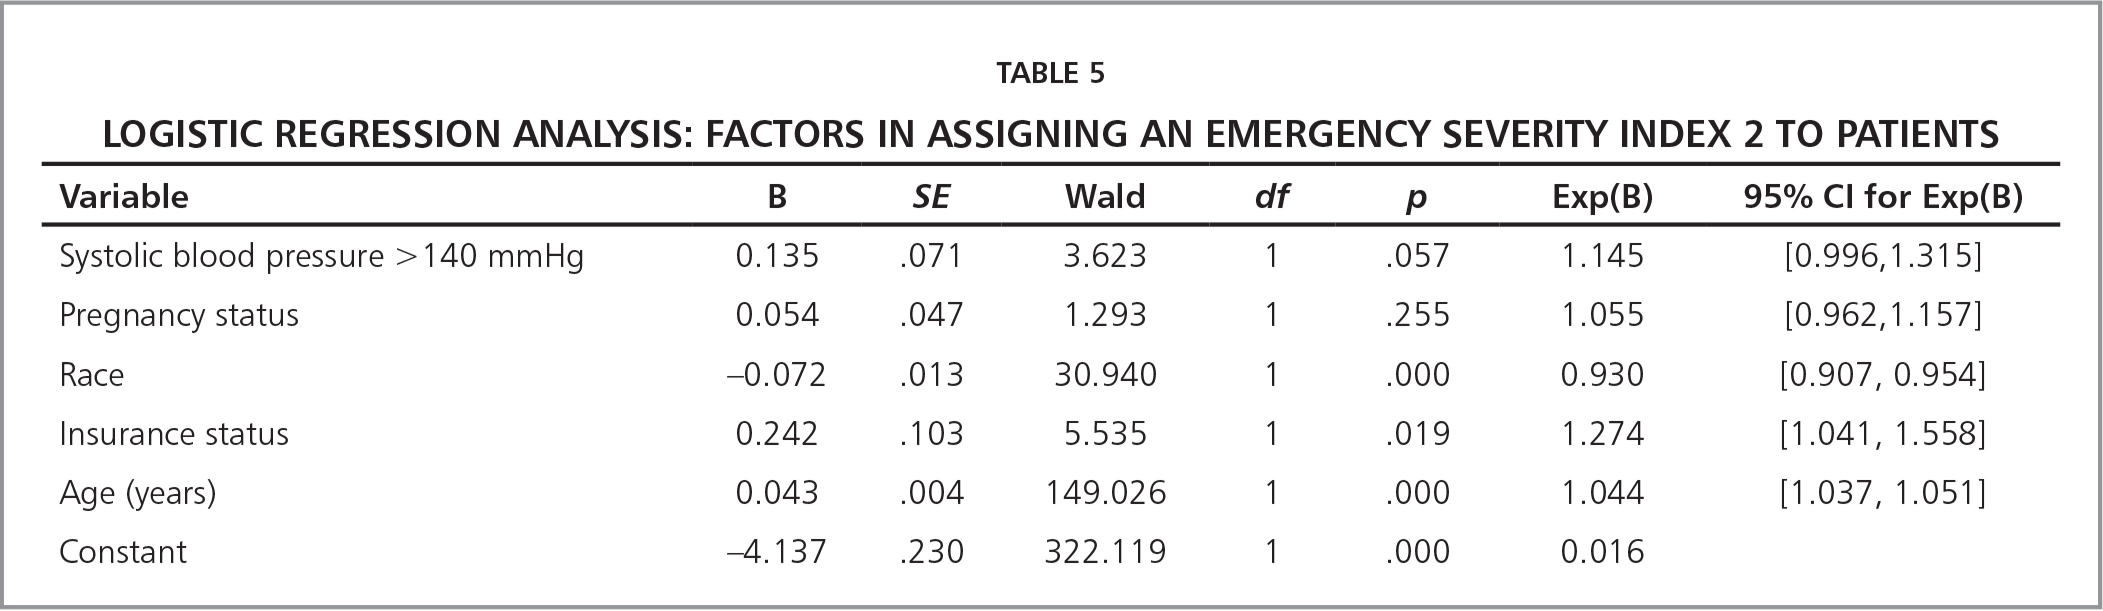 Logistic Regression Analysis: Factors in Assigning An Emergency Severity Index 2 to Patients